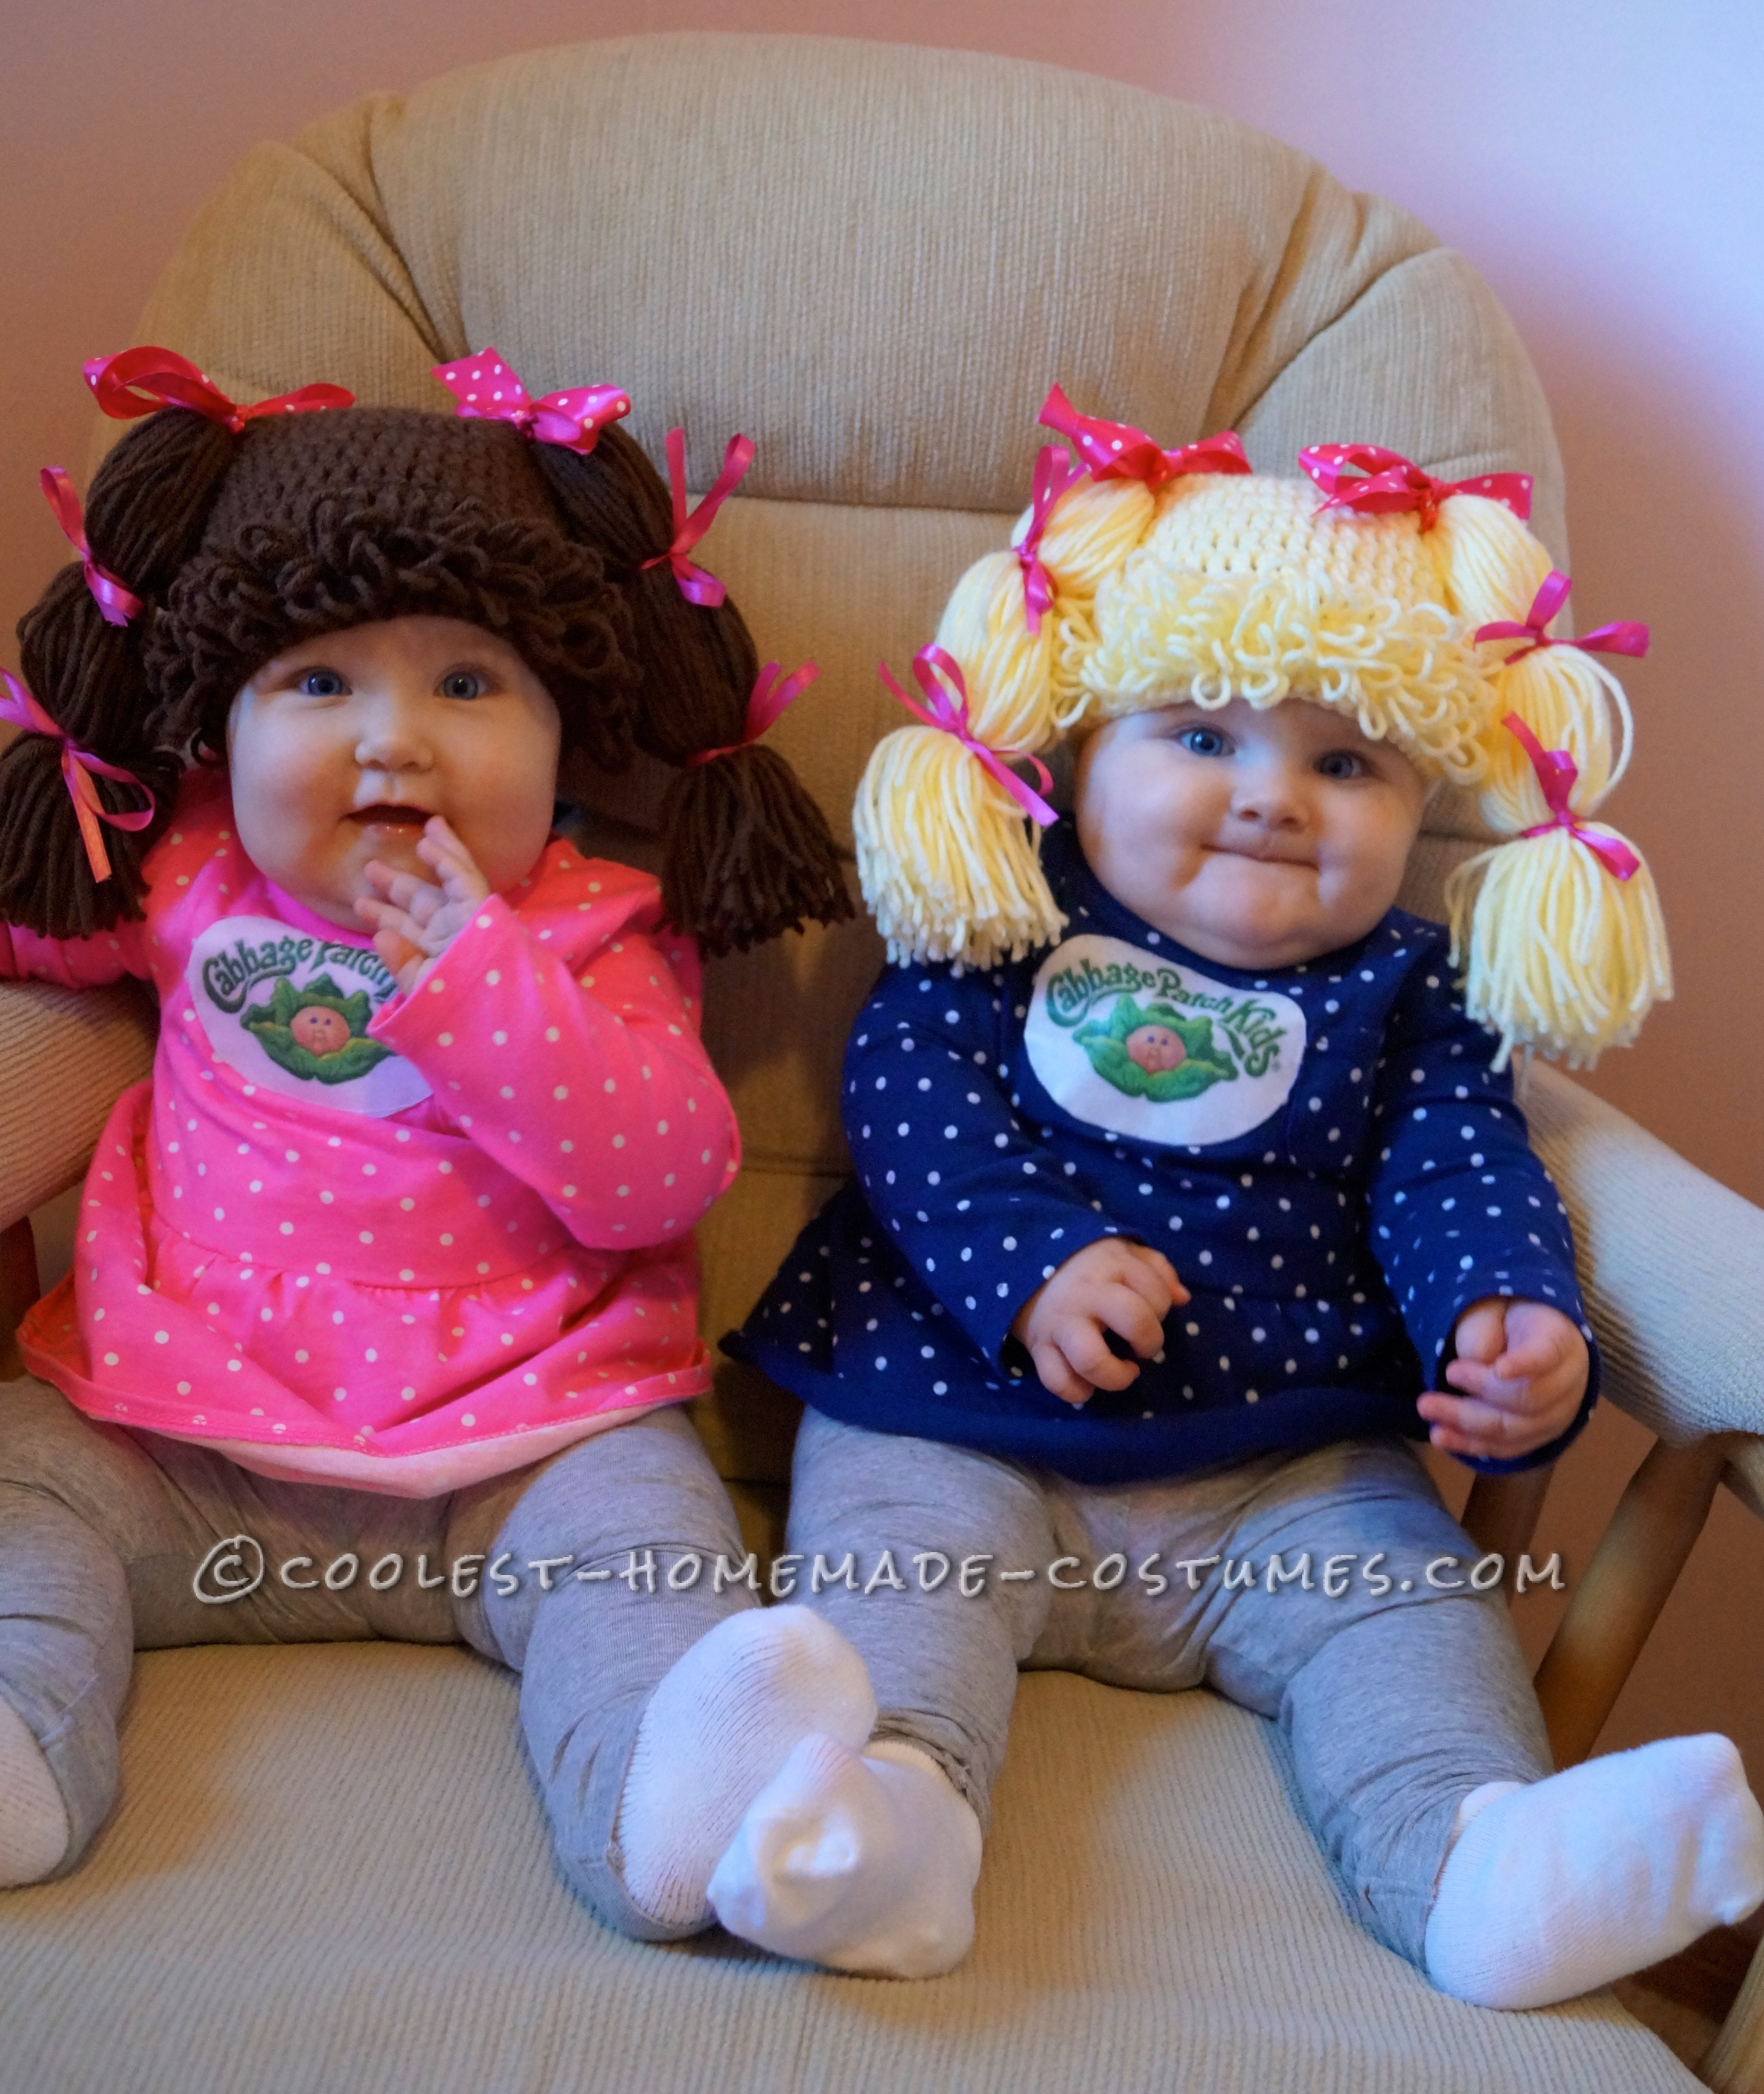 dea52000b4065 Easy and Comfy Costume for Babies: Cabbage Patch Twins